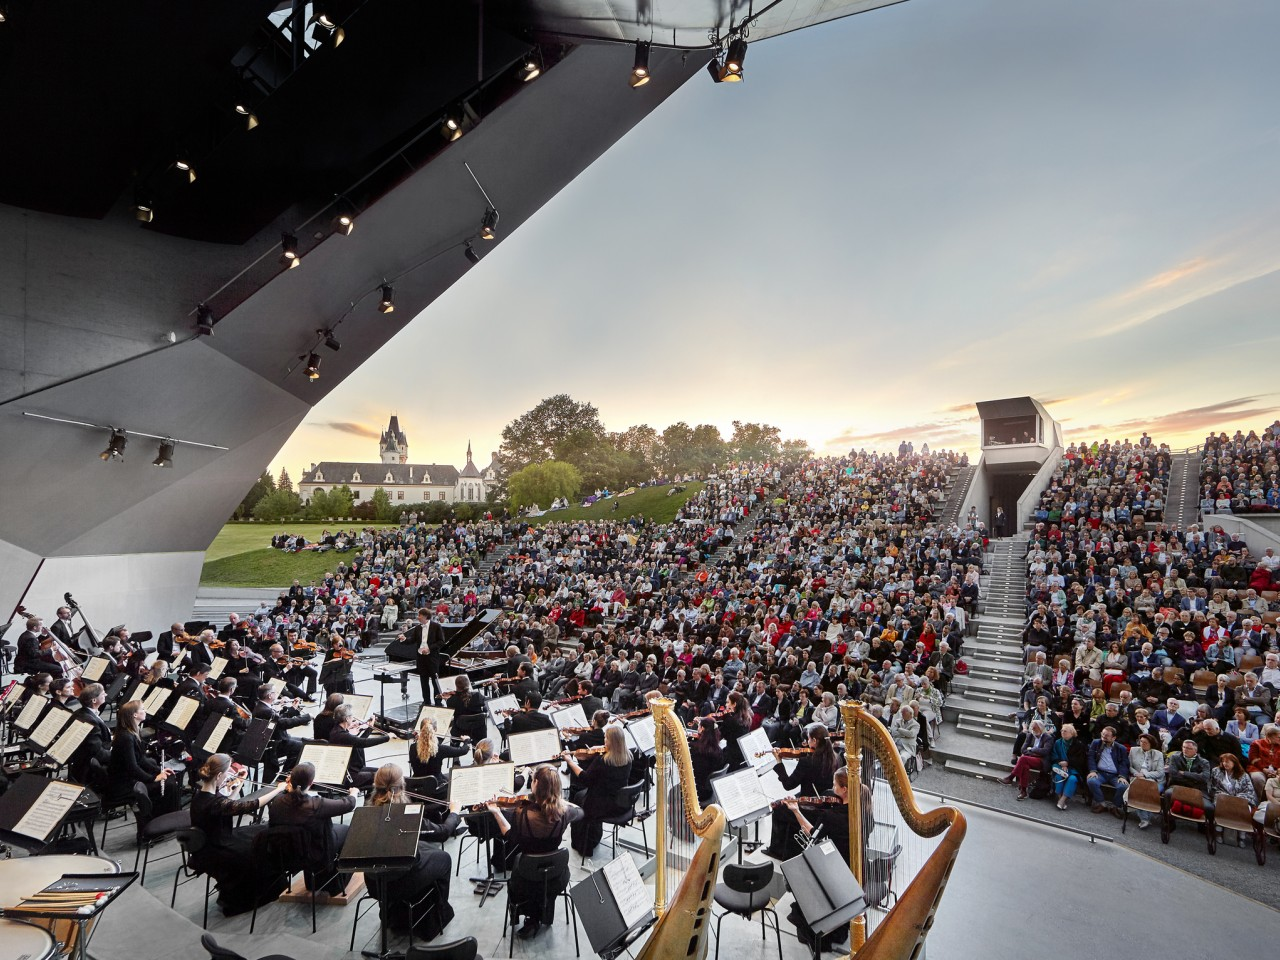 Vienna and the Grafenegg Music Festival: 01 Sept 2020